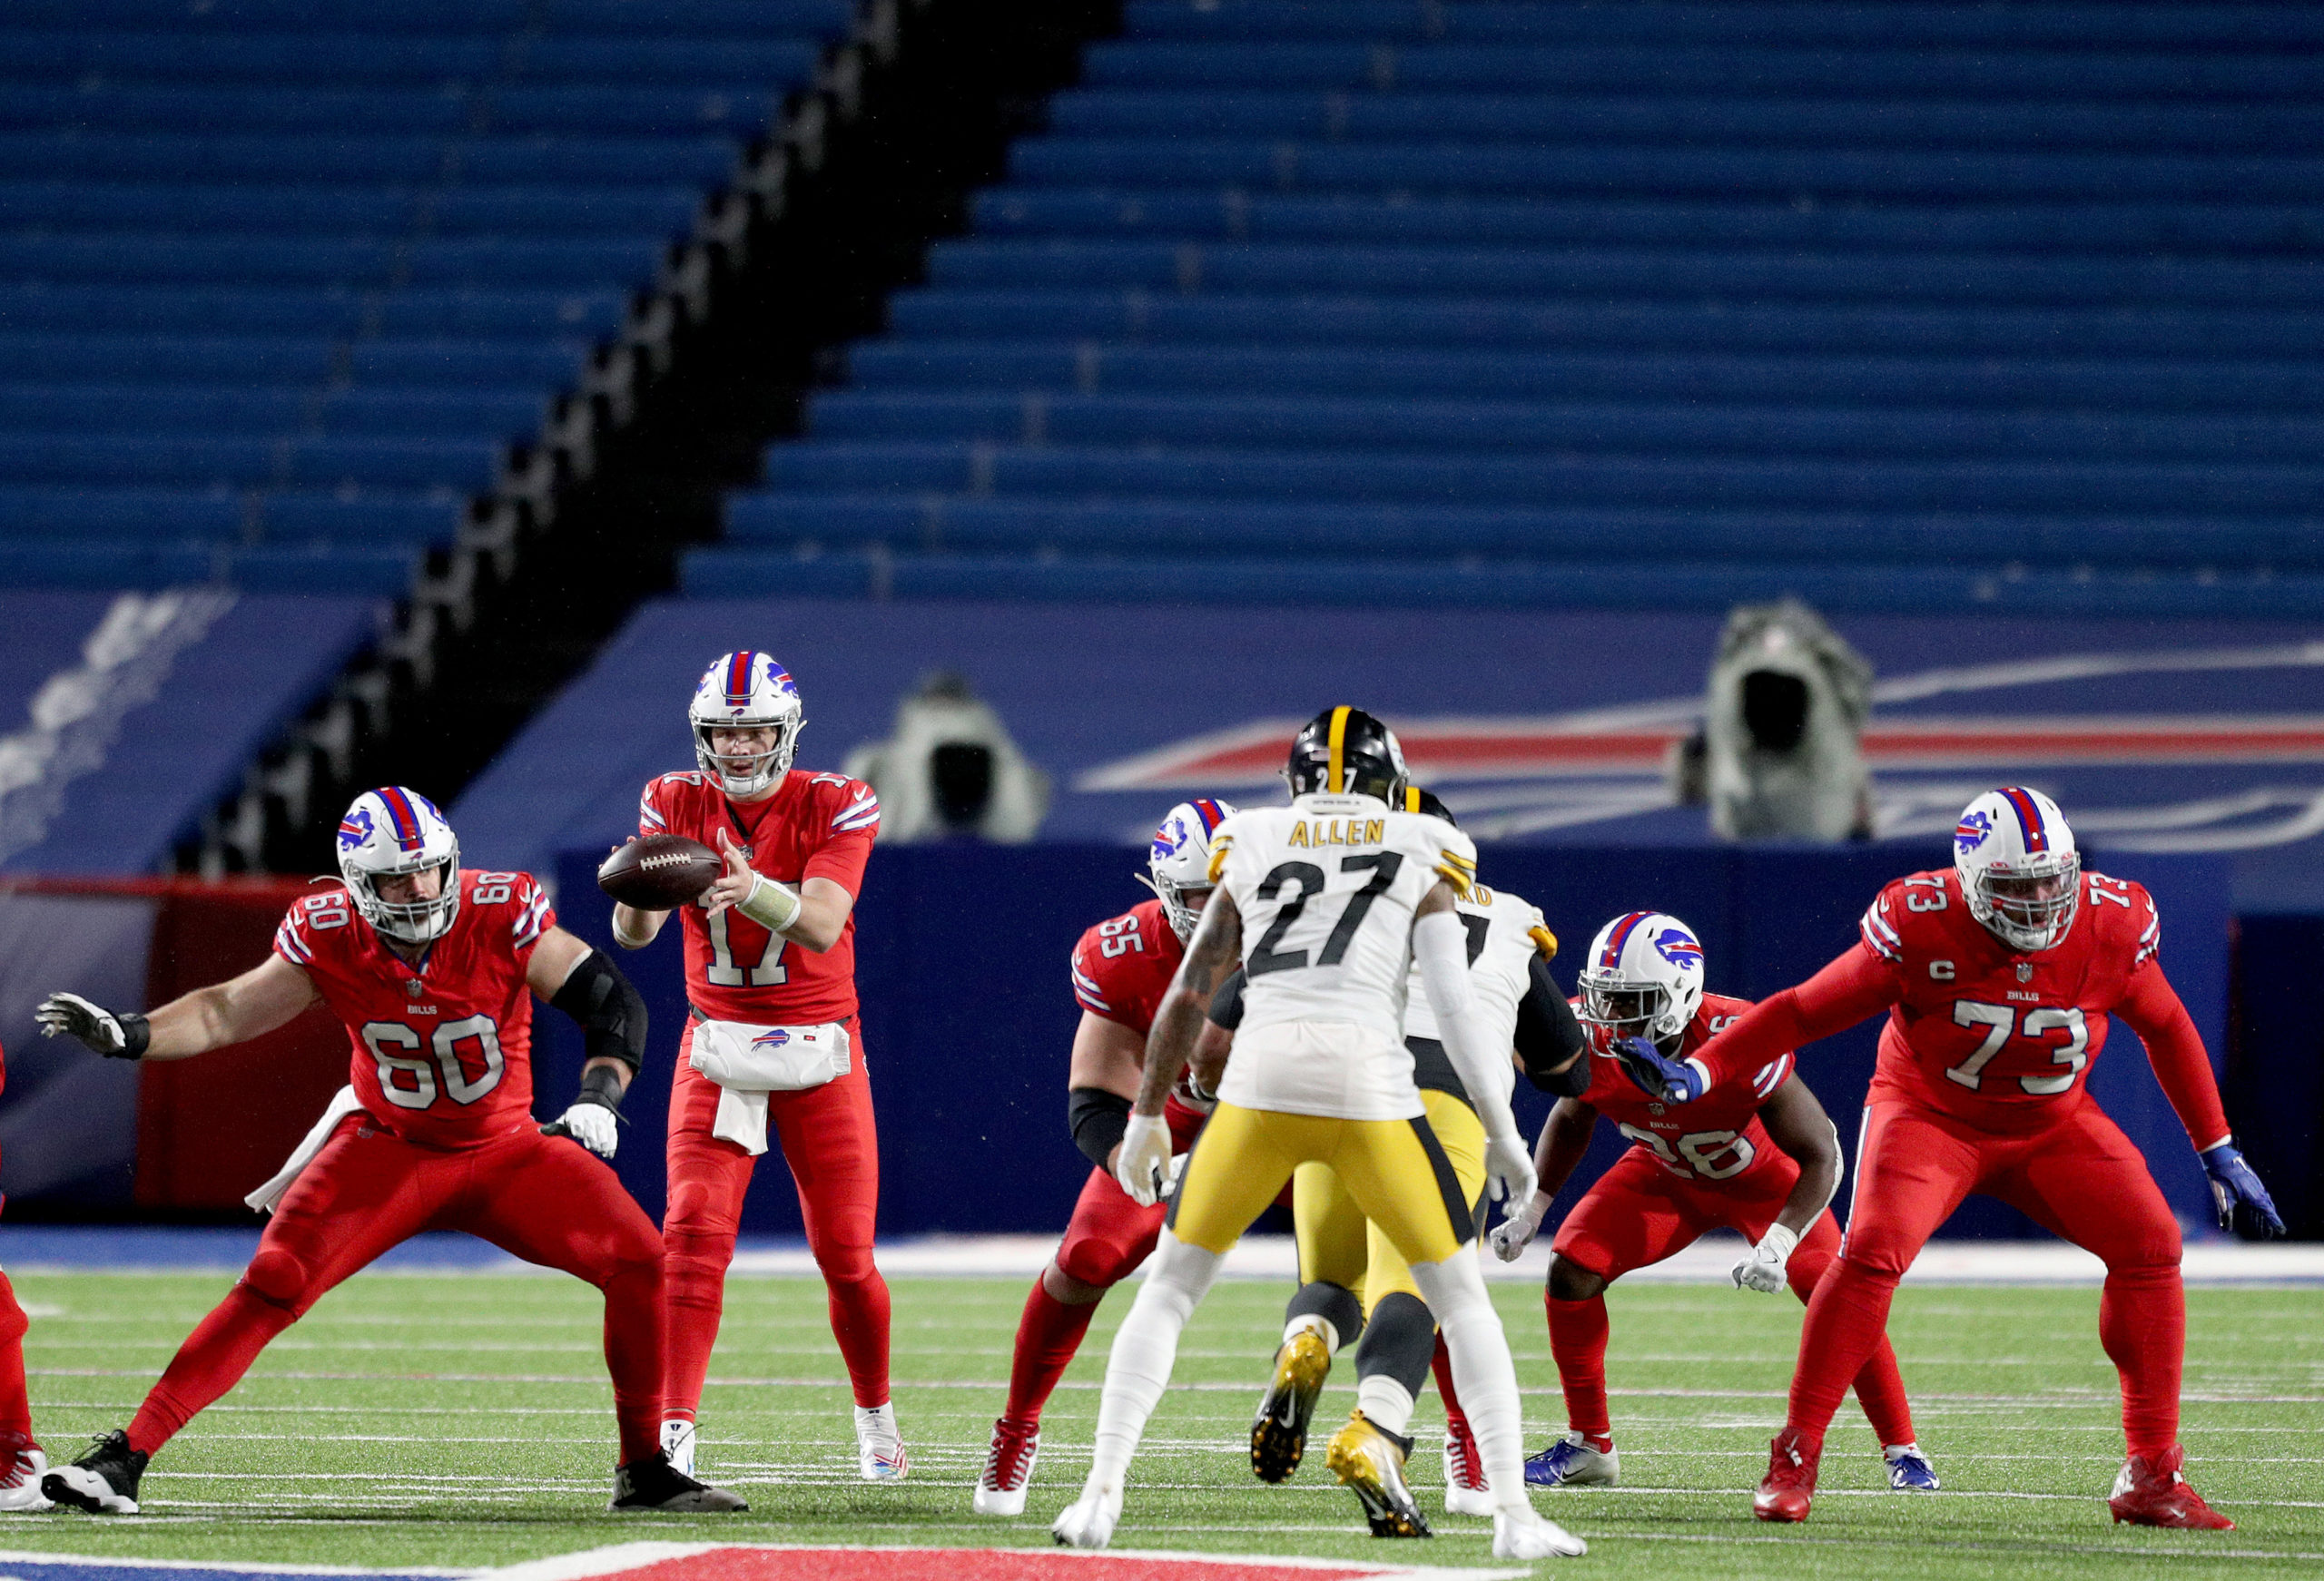 ORCHARD PARK, NEW YORK - DECEMBER 13: Josh Allen #17 of the Buffalo Bills takes the snap against the Pittsburgh Steelers during the third quarter in the game at Bills Stadium on December 13, 2020 in Orchard Park, New York. (Bryan M. Bennett/Getty Images)